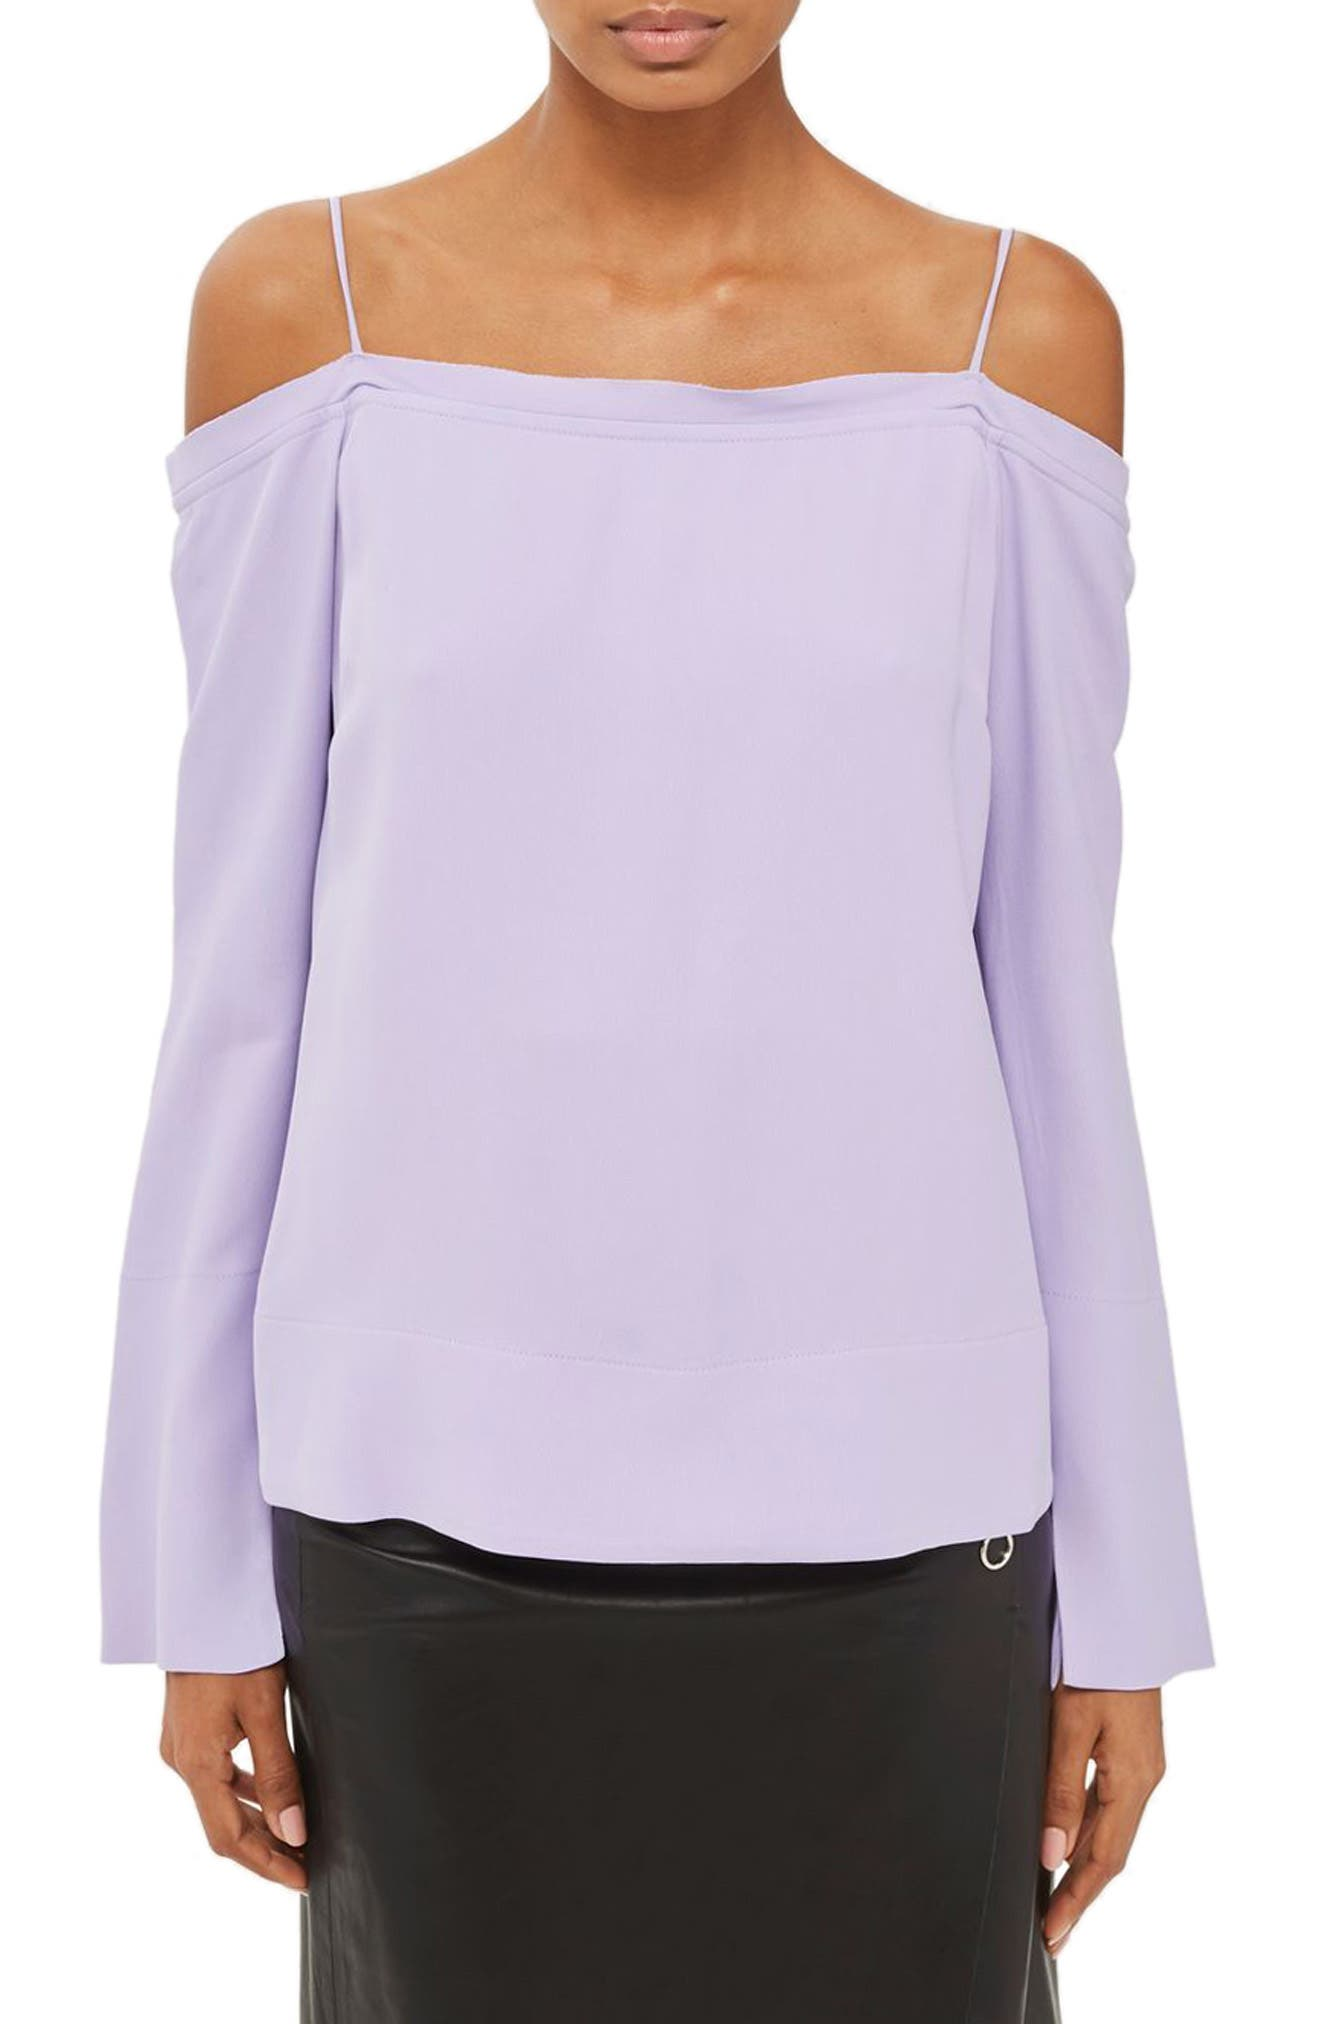 Topshop Boutique Tie Back Off the Shoulder Top